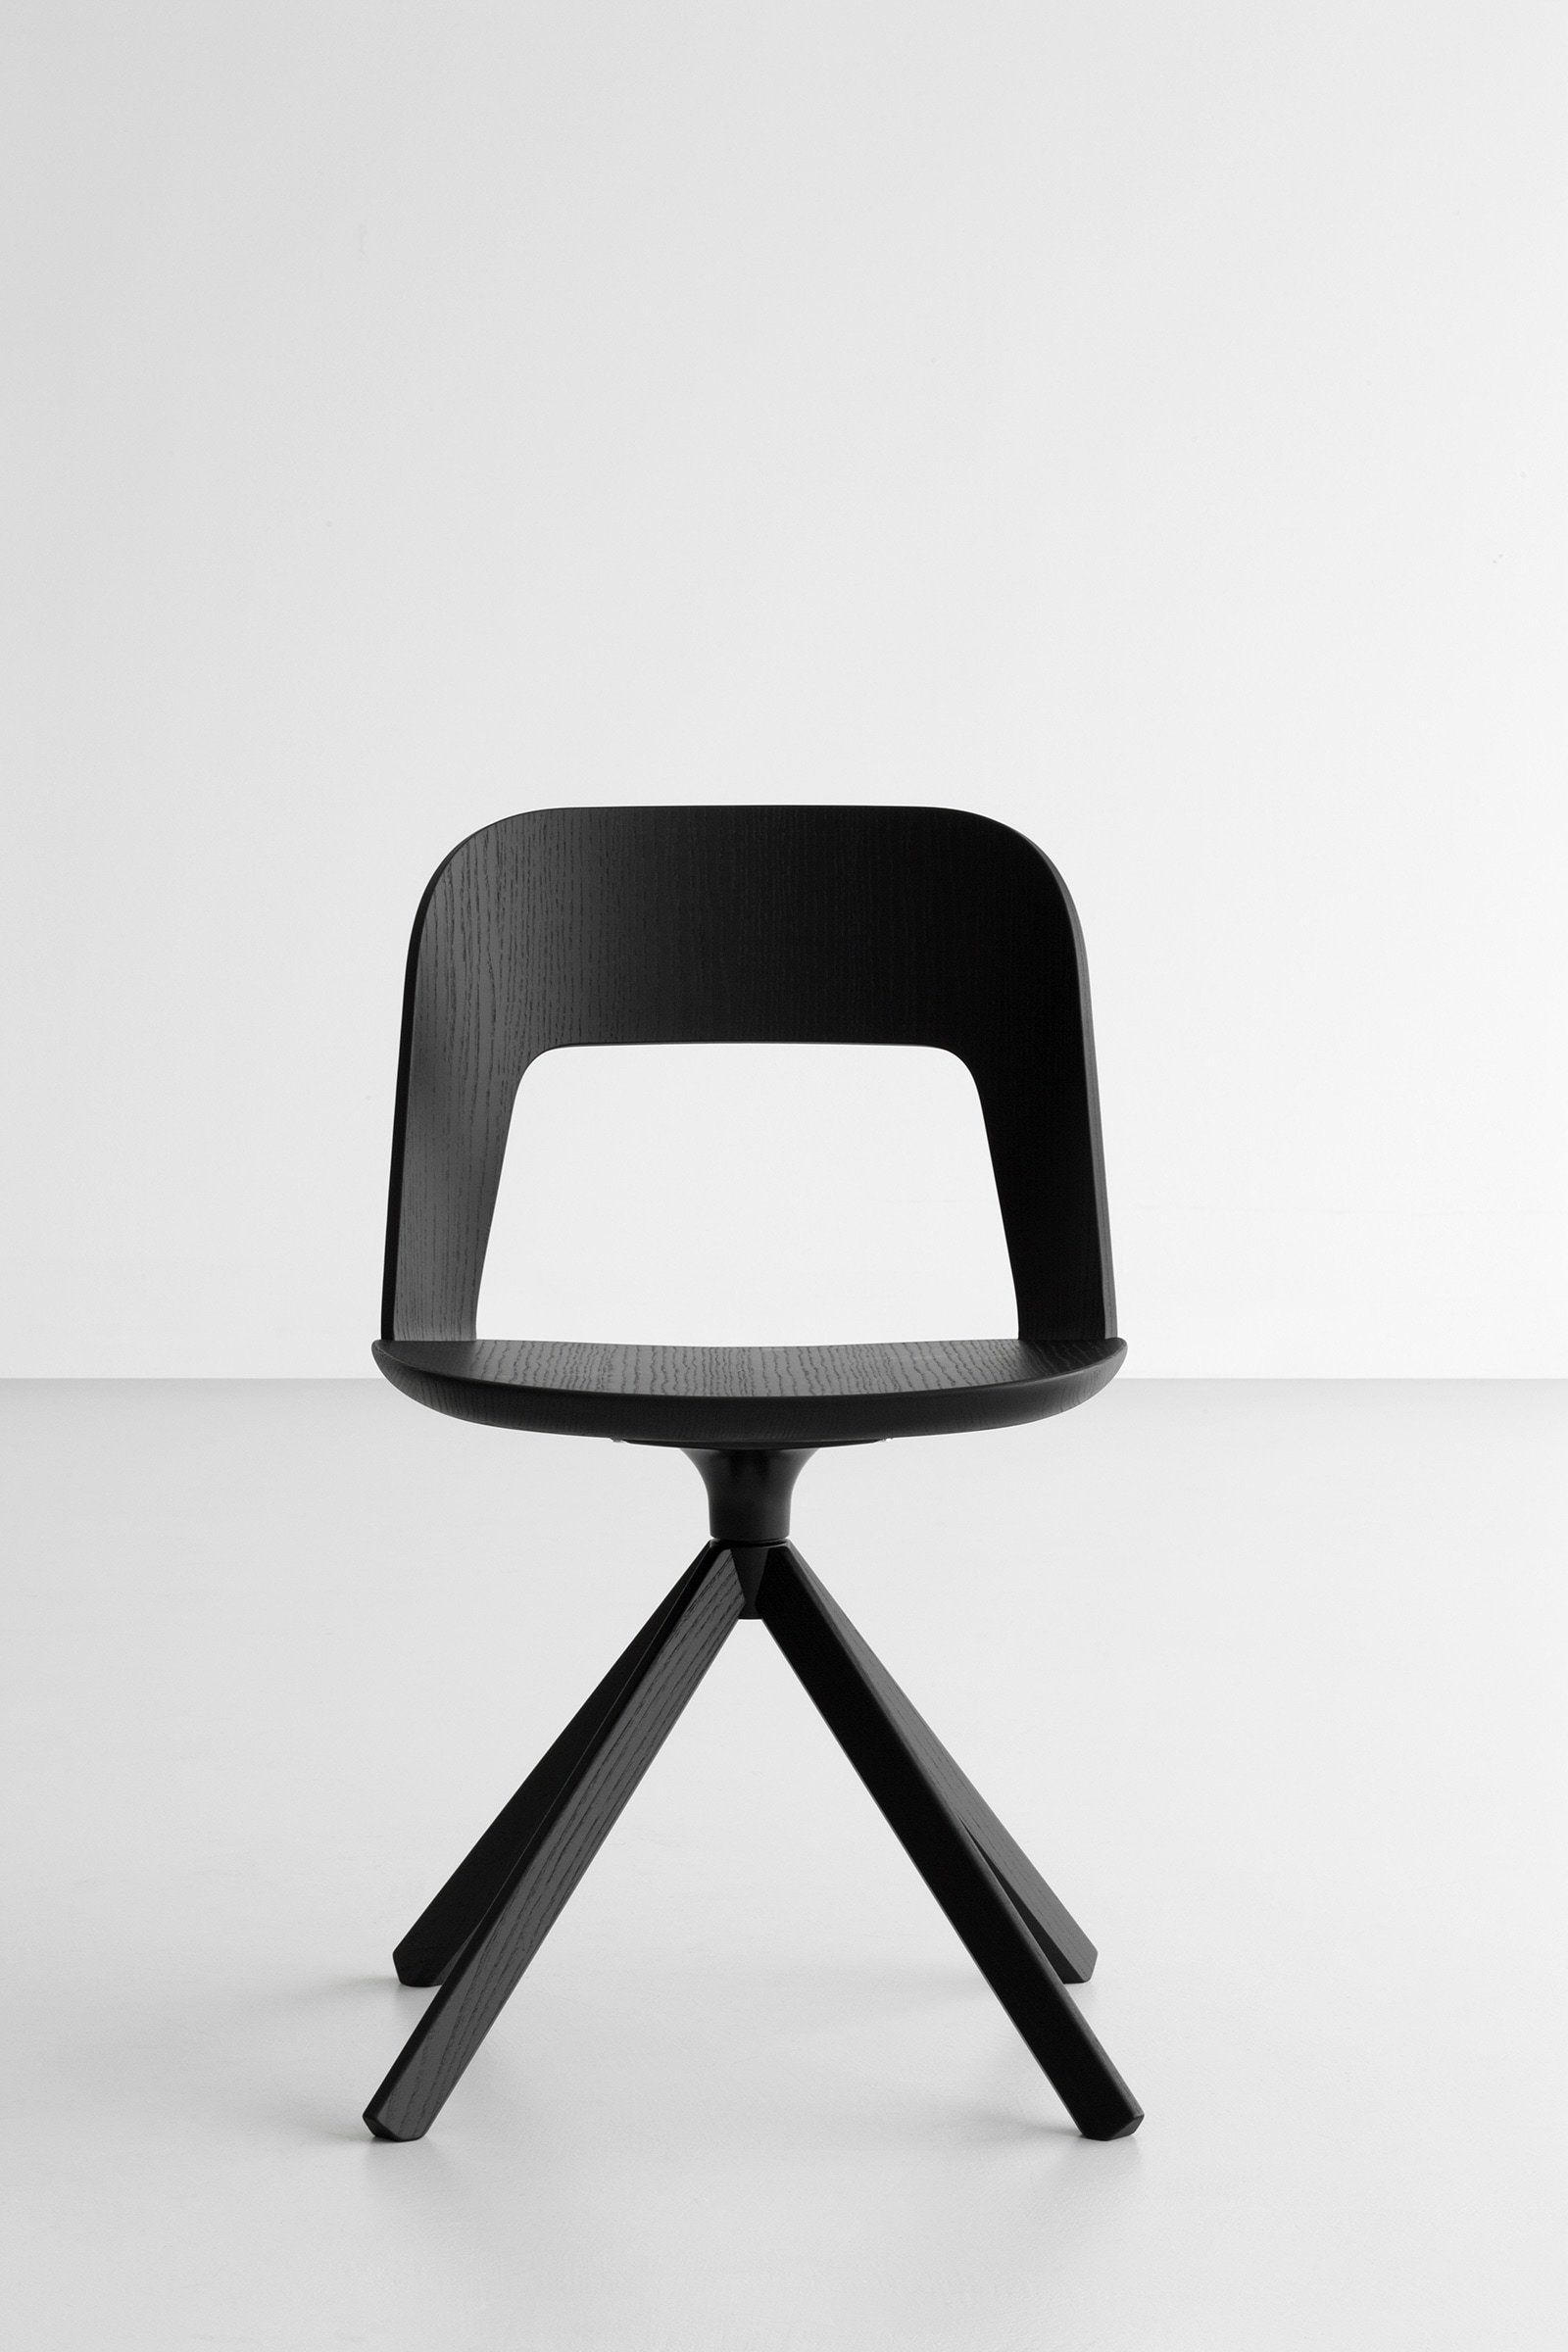 Launched last year by the italian furniture company lapalma arco is a chic and minimal chair brilliantly designed by italian product designer frances